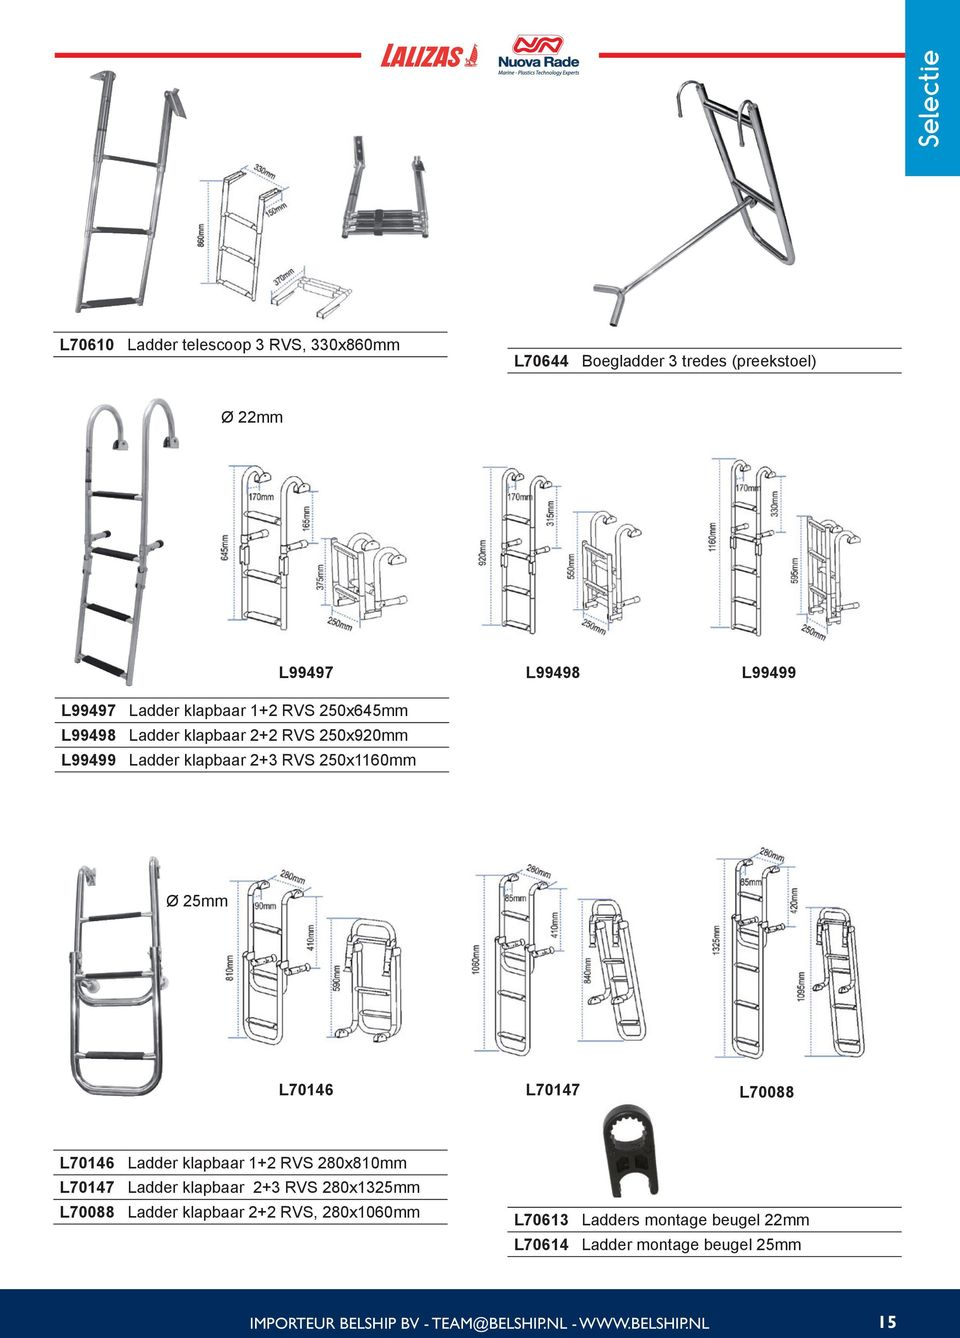 L70147 L70088 L70146 Ladder klapbaar 1+2 RVS 280x810mm L70147 Ladder klapbaar 2+3 RVS 280x1325mm L70088 Ladder klapbaar 2+2 RVS,